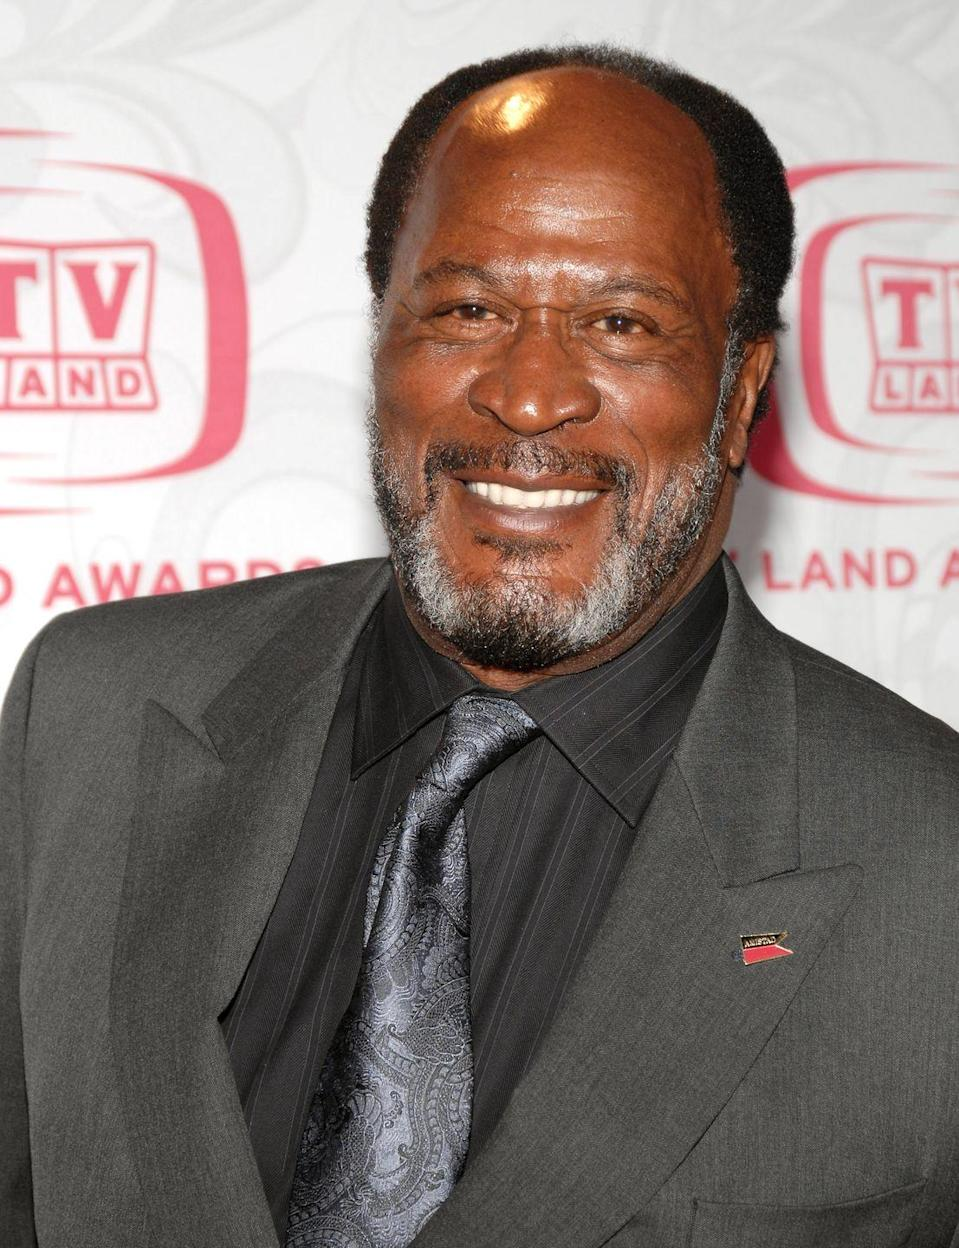 "<p>John Amos, who played James Evans Sr. on the '70s sitcom <em>Good Times,</em> was killed off in season 3. Although the actor wasn't necessarily keen on leaving at first, <a href=""https://www.youtube.com/watch?v=rMp6zFCChFI&index=80&list=PLSZ-OLXEesJ2UET14Ryzz7-mLENC-JWAT"" rel=""nofollow noopener"" target=""_blank"" data-ylk=""slk:he explained"" class=""link rapid-noclick-resp"">he explained</a> that the decision was made because he was in a constant struggle with the writers <a href=""https://www.youtube.com/watch?v=E76YCRL6zE0"" rel=""nofollow noopener"" target=""_blank"" data-ylk=""slk:on the direction they were taking the show"" class=""link rapid-noclick-resp"">on the direction they were taking the show</a>.</p>"